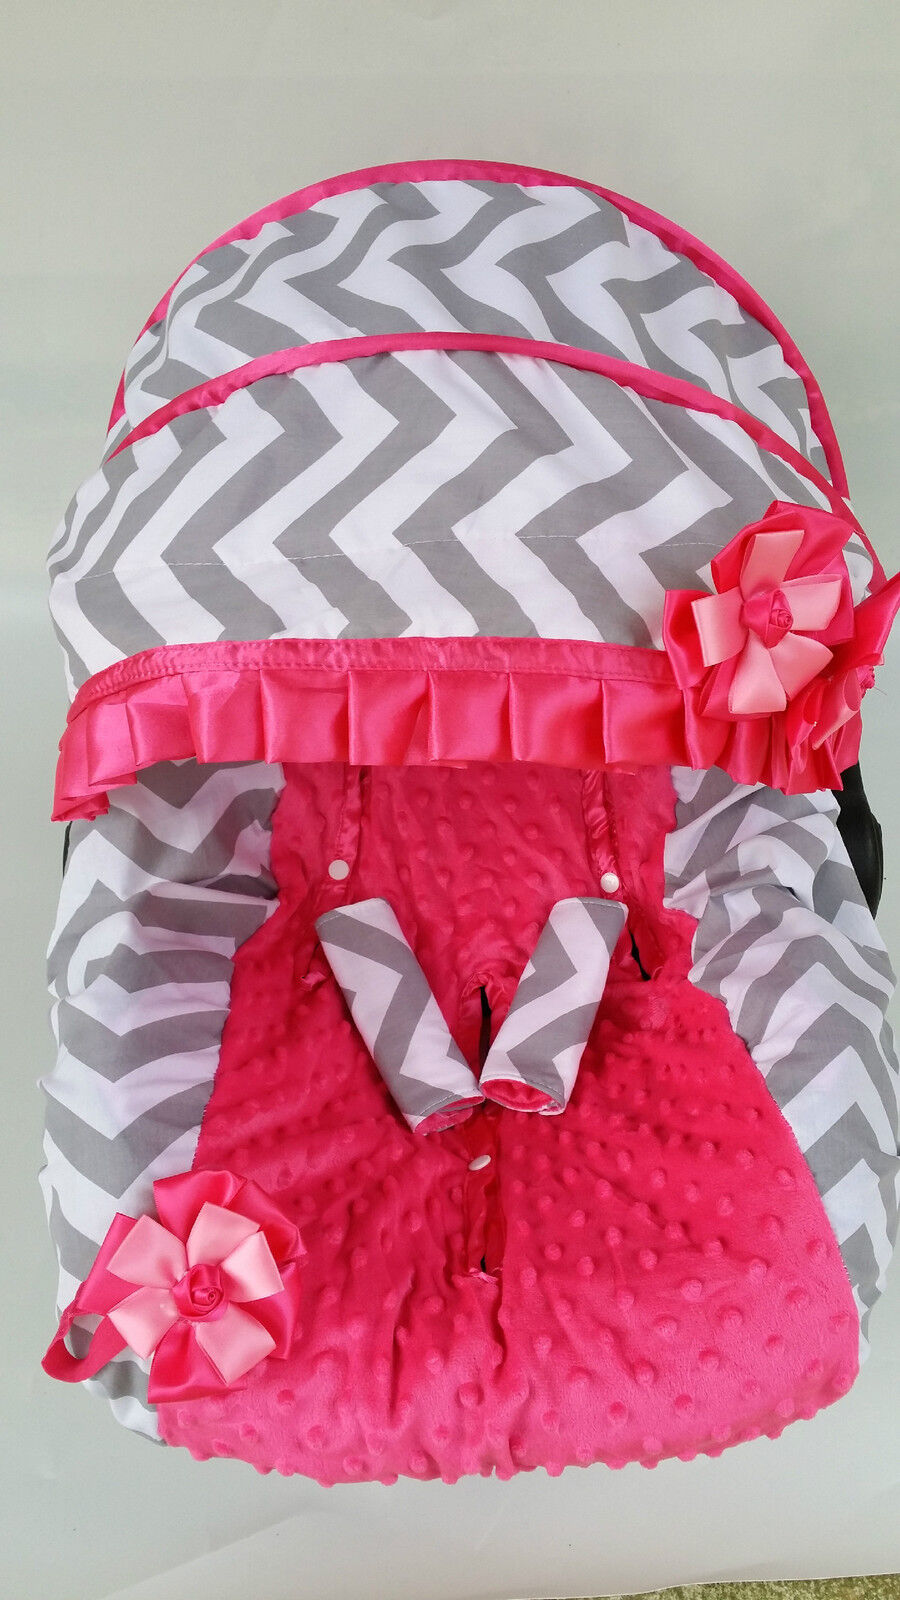 Baby Girl Gray Pink Infant Car Seat Cover Canopy Cover Fit Most